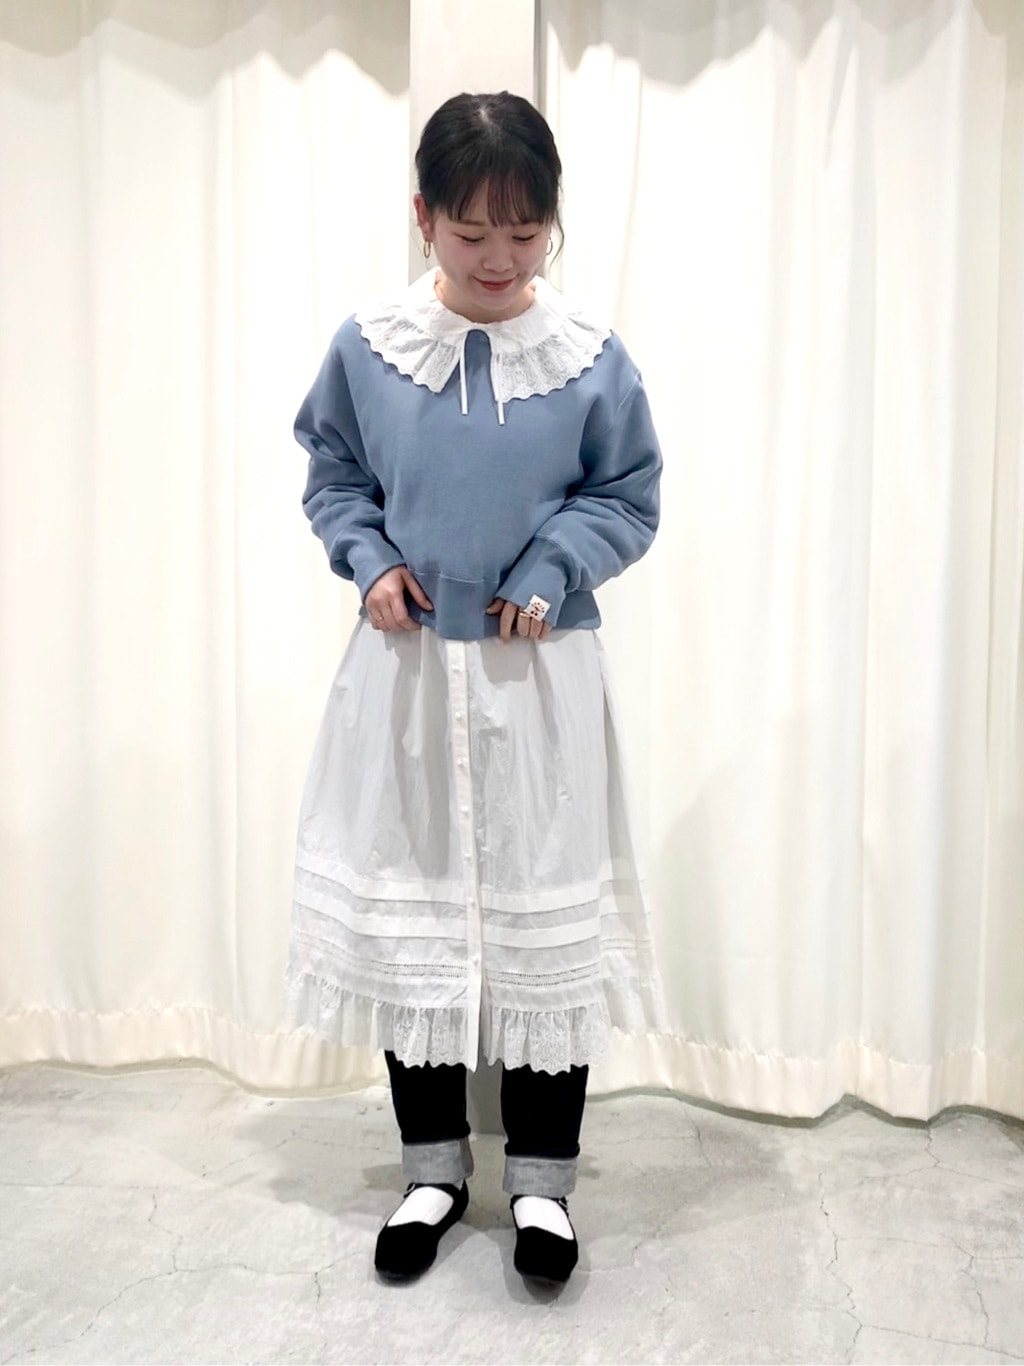 Dot and Stripes CHILD WOMAN 新宿ミロード 身長:157cm 2021.01.21